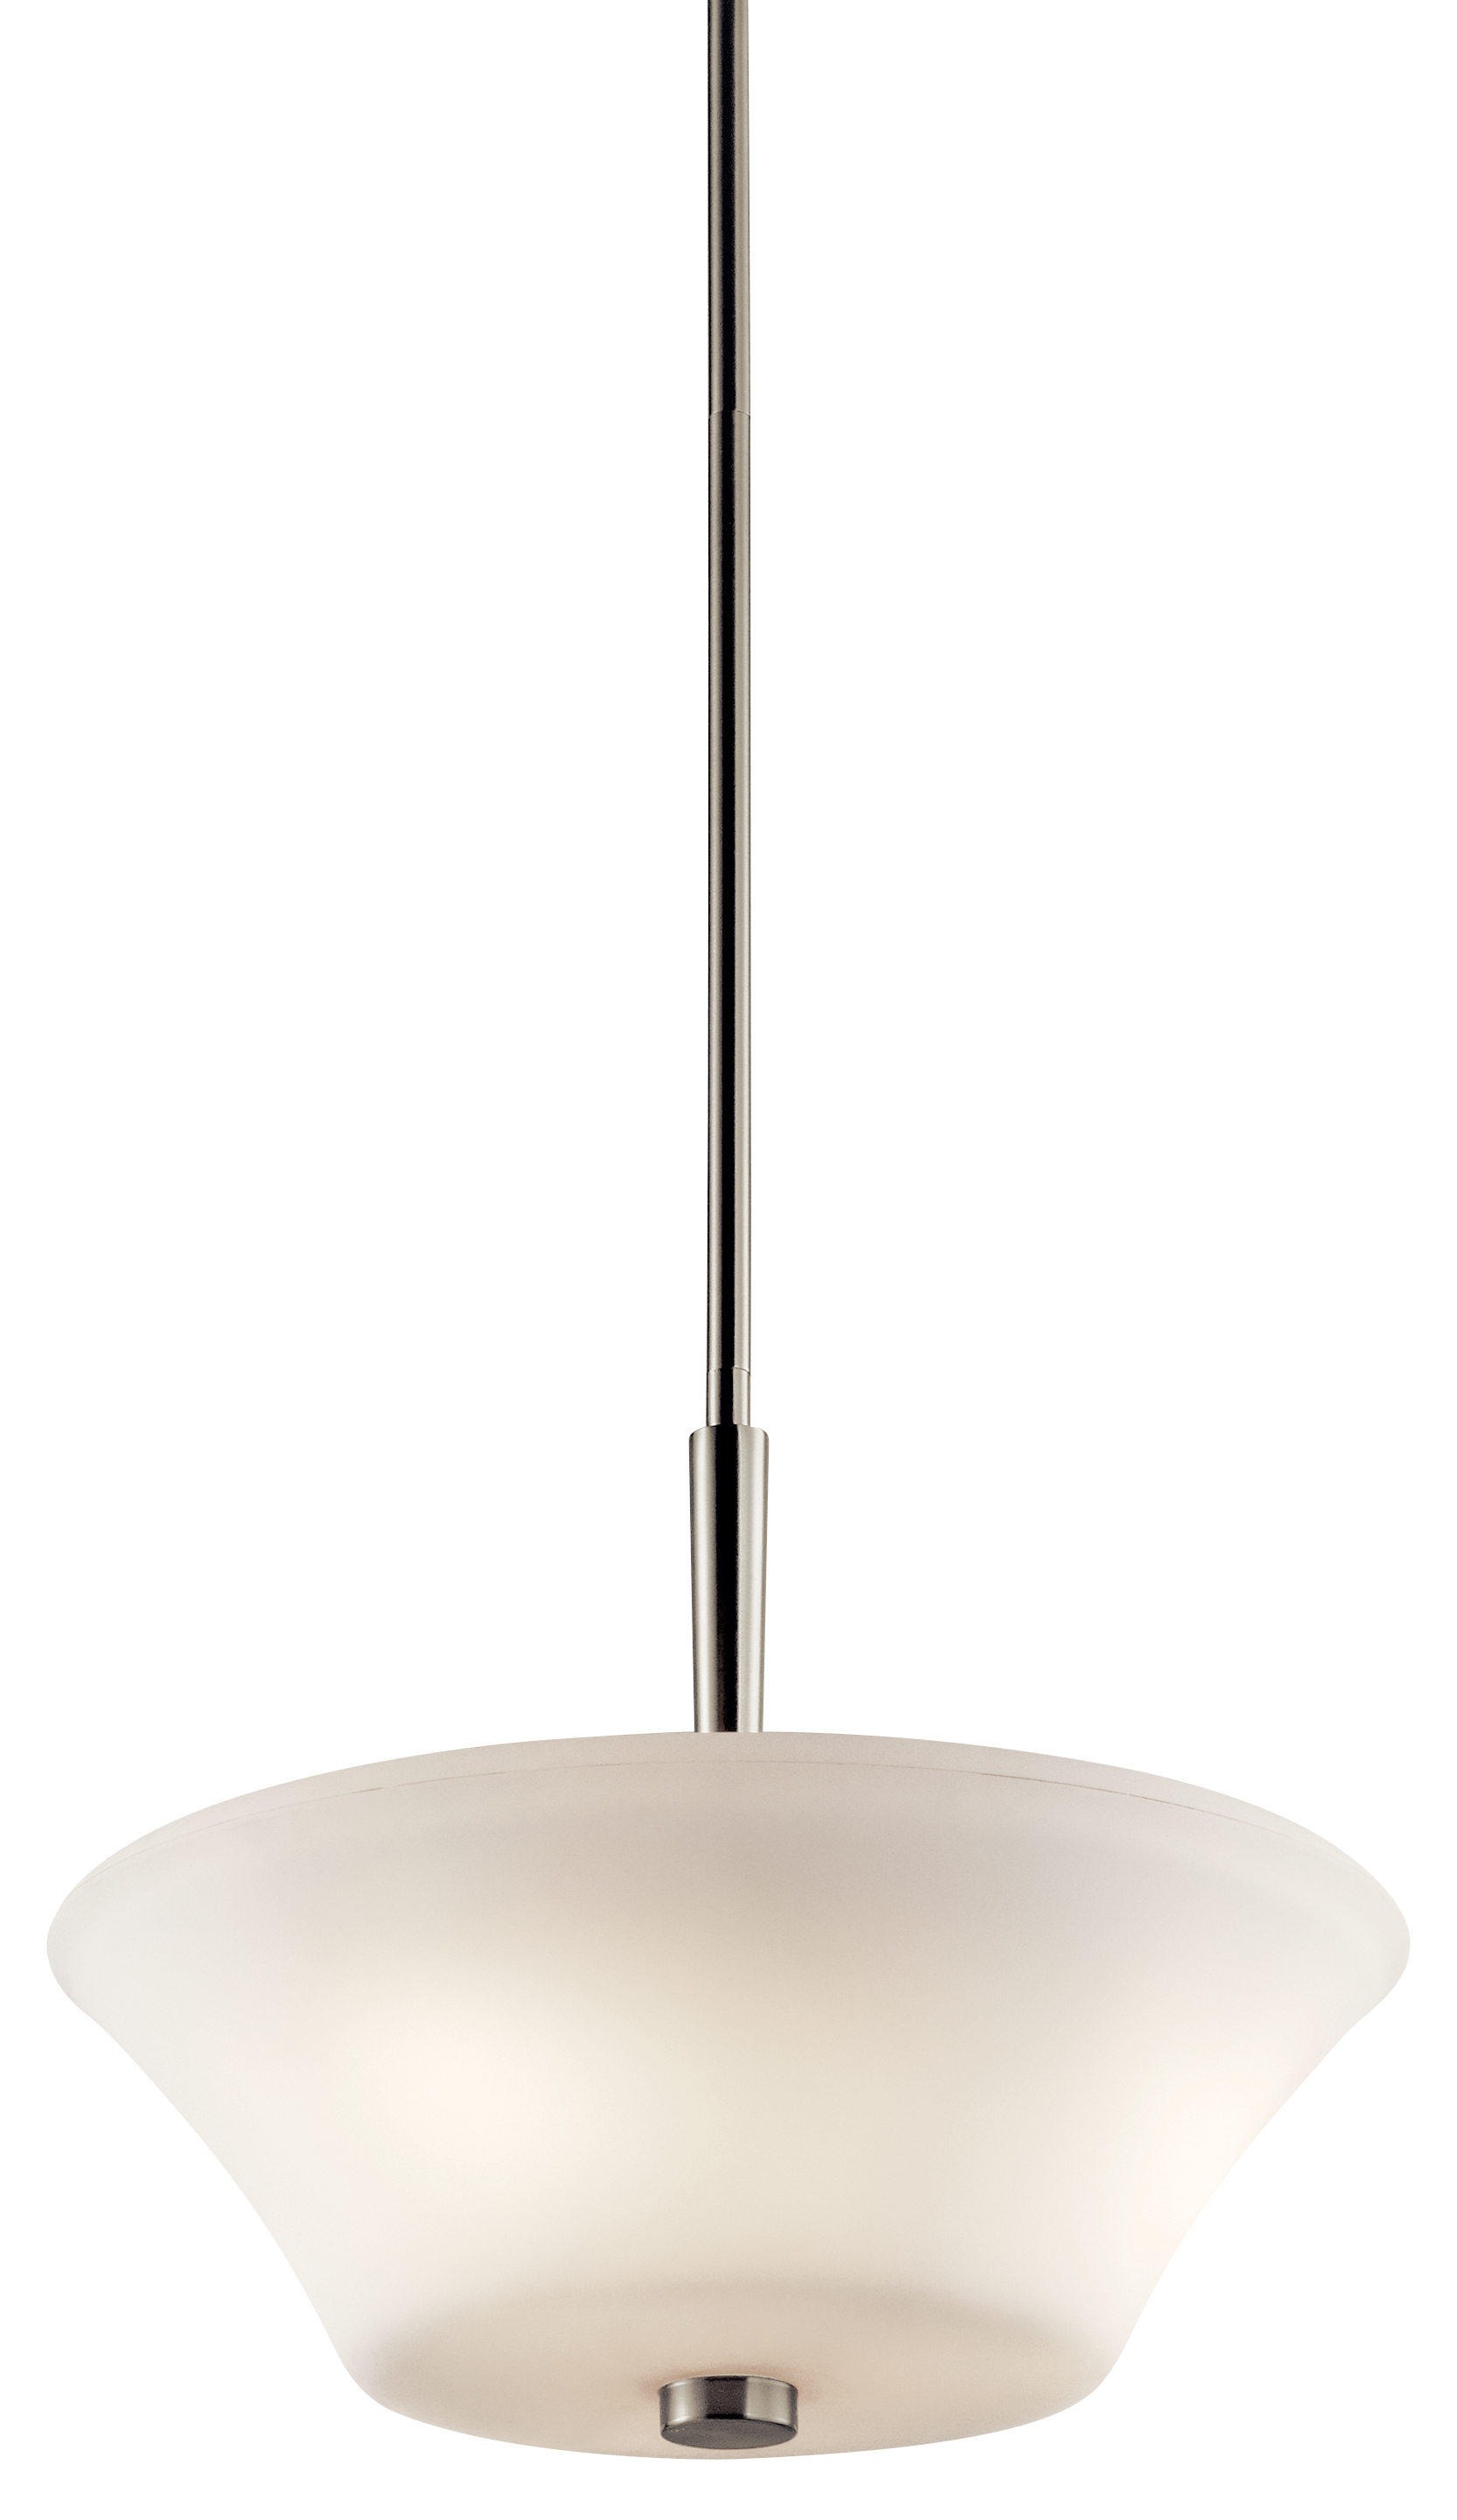 Kichler Aubrey LED Flush Light with Satin Etched Painted White Inside Shade - Brushed Nickel (43669NIL16)